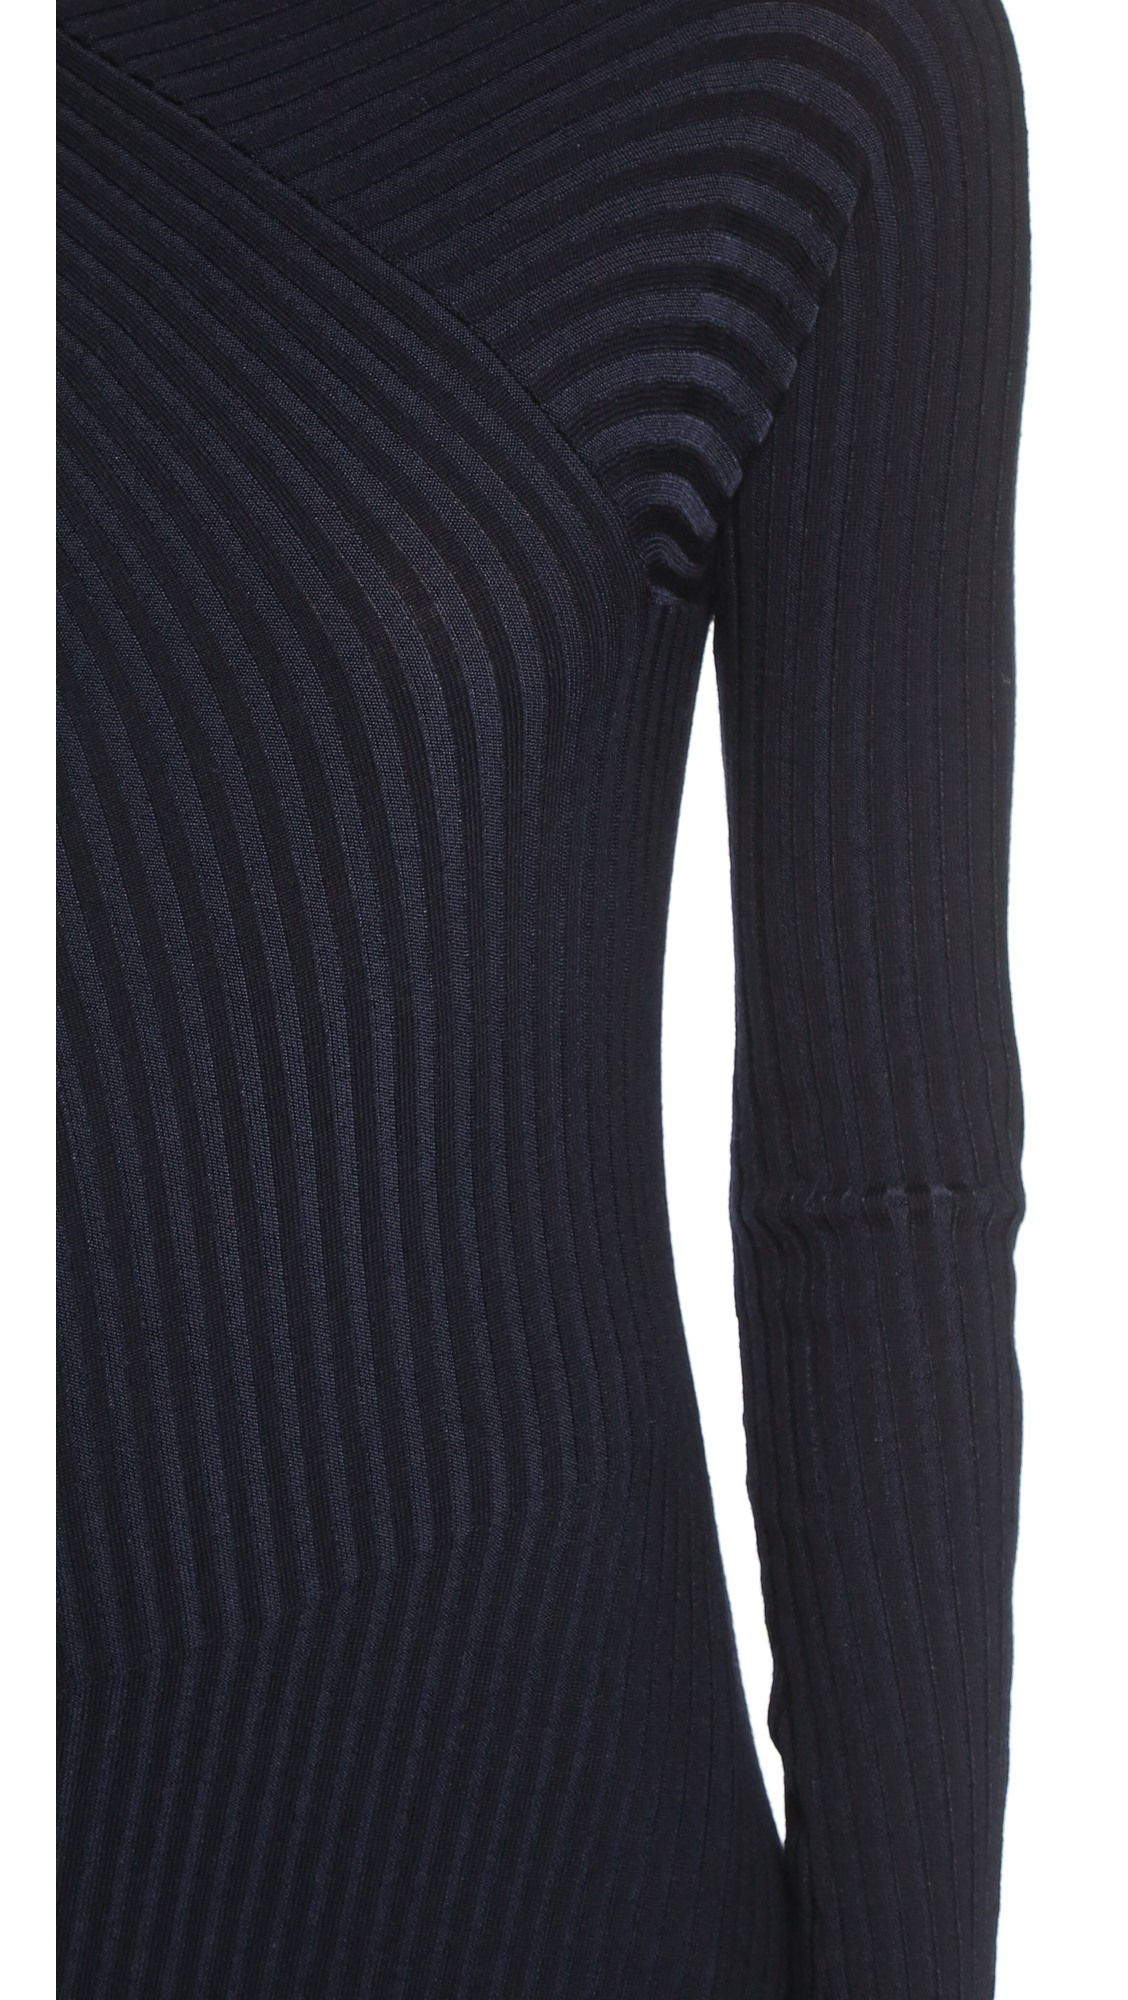 Acne studios Ayla Ribbed Sweater Maxi Dress - Dark Navy in Blue | Lyst